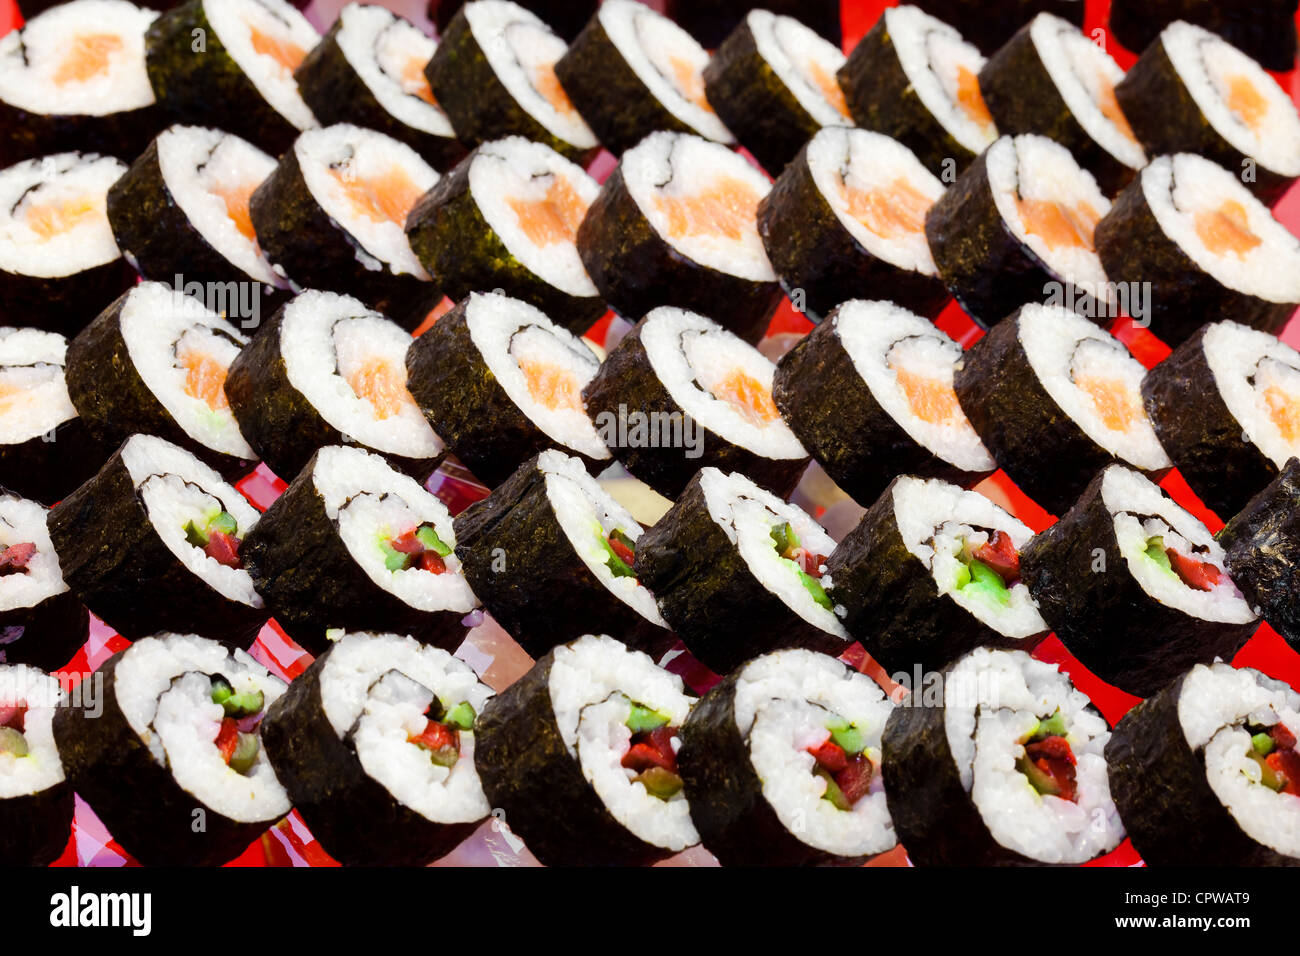 traditional japanese cuisine- sushi rolls served at a party - Stock Image